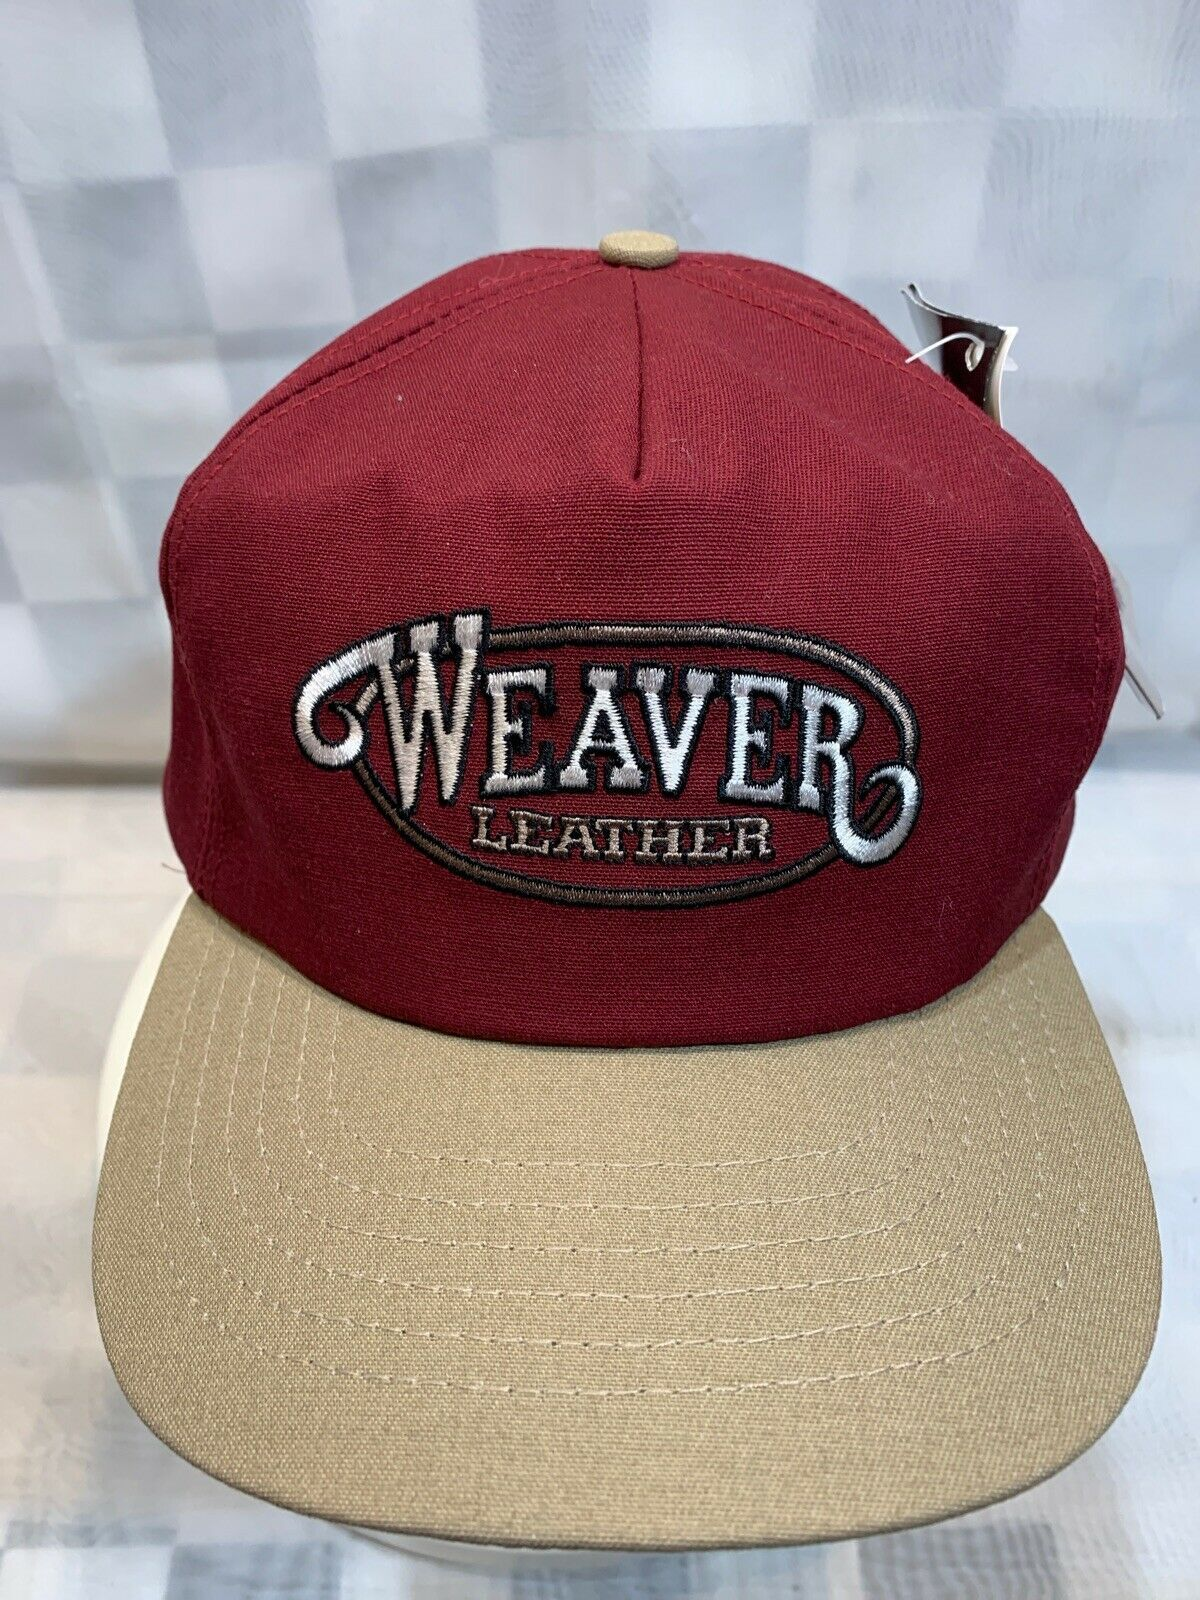 Primary image for WEAVER Leather VTG Made in USA Adjustable Adult Ball Cap Hat NEW NWT